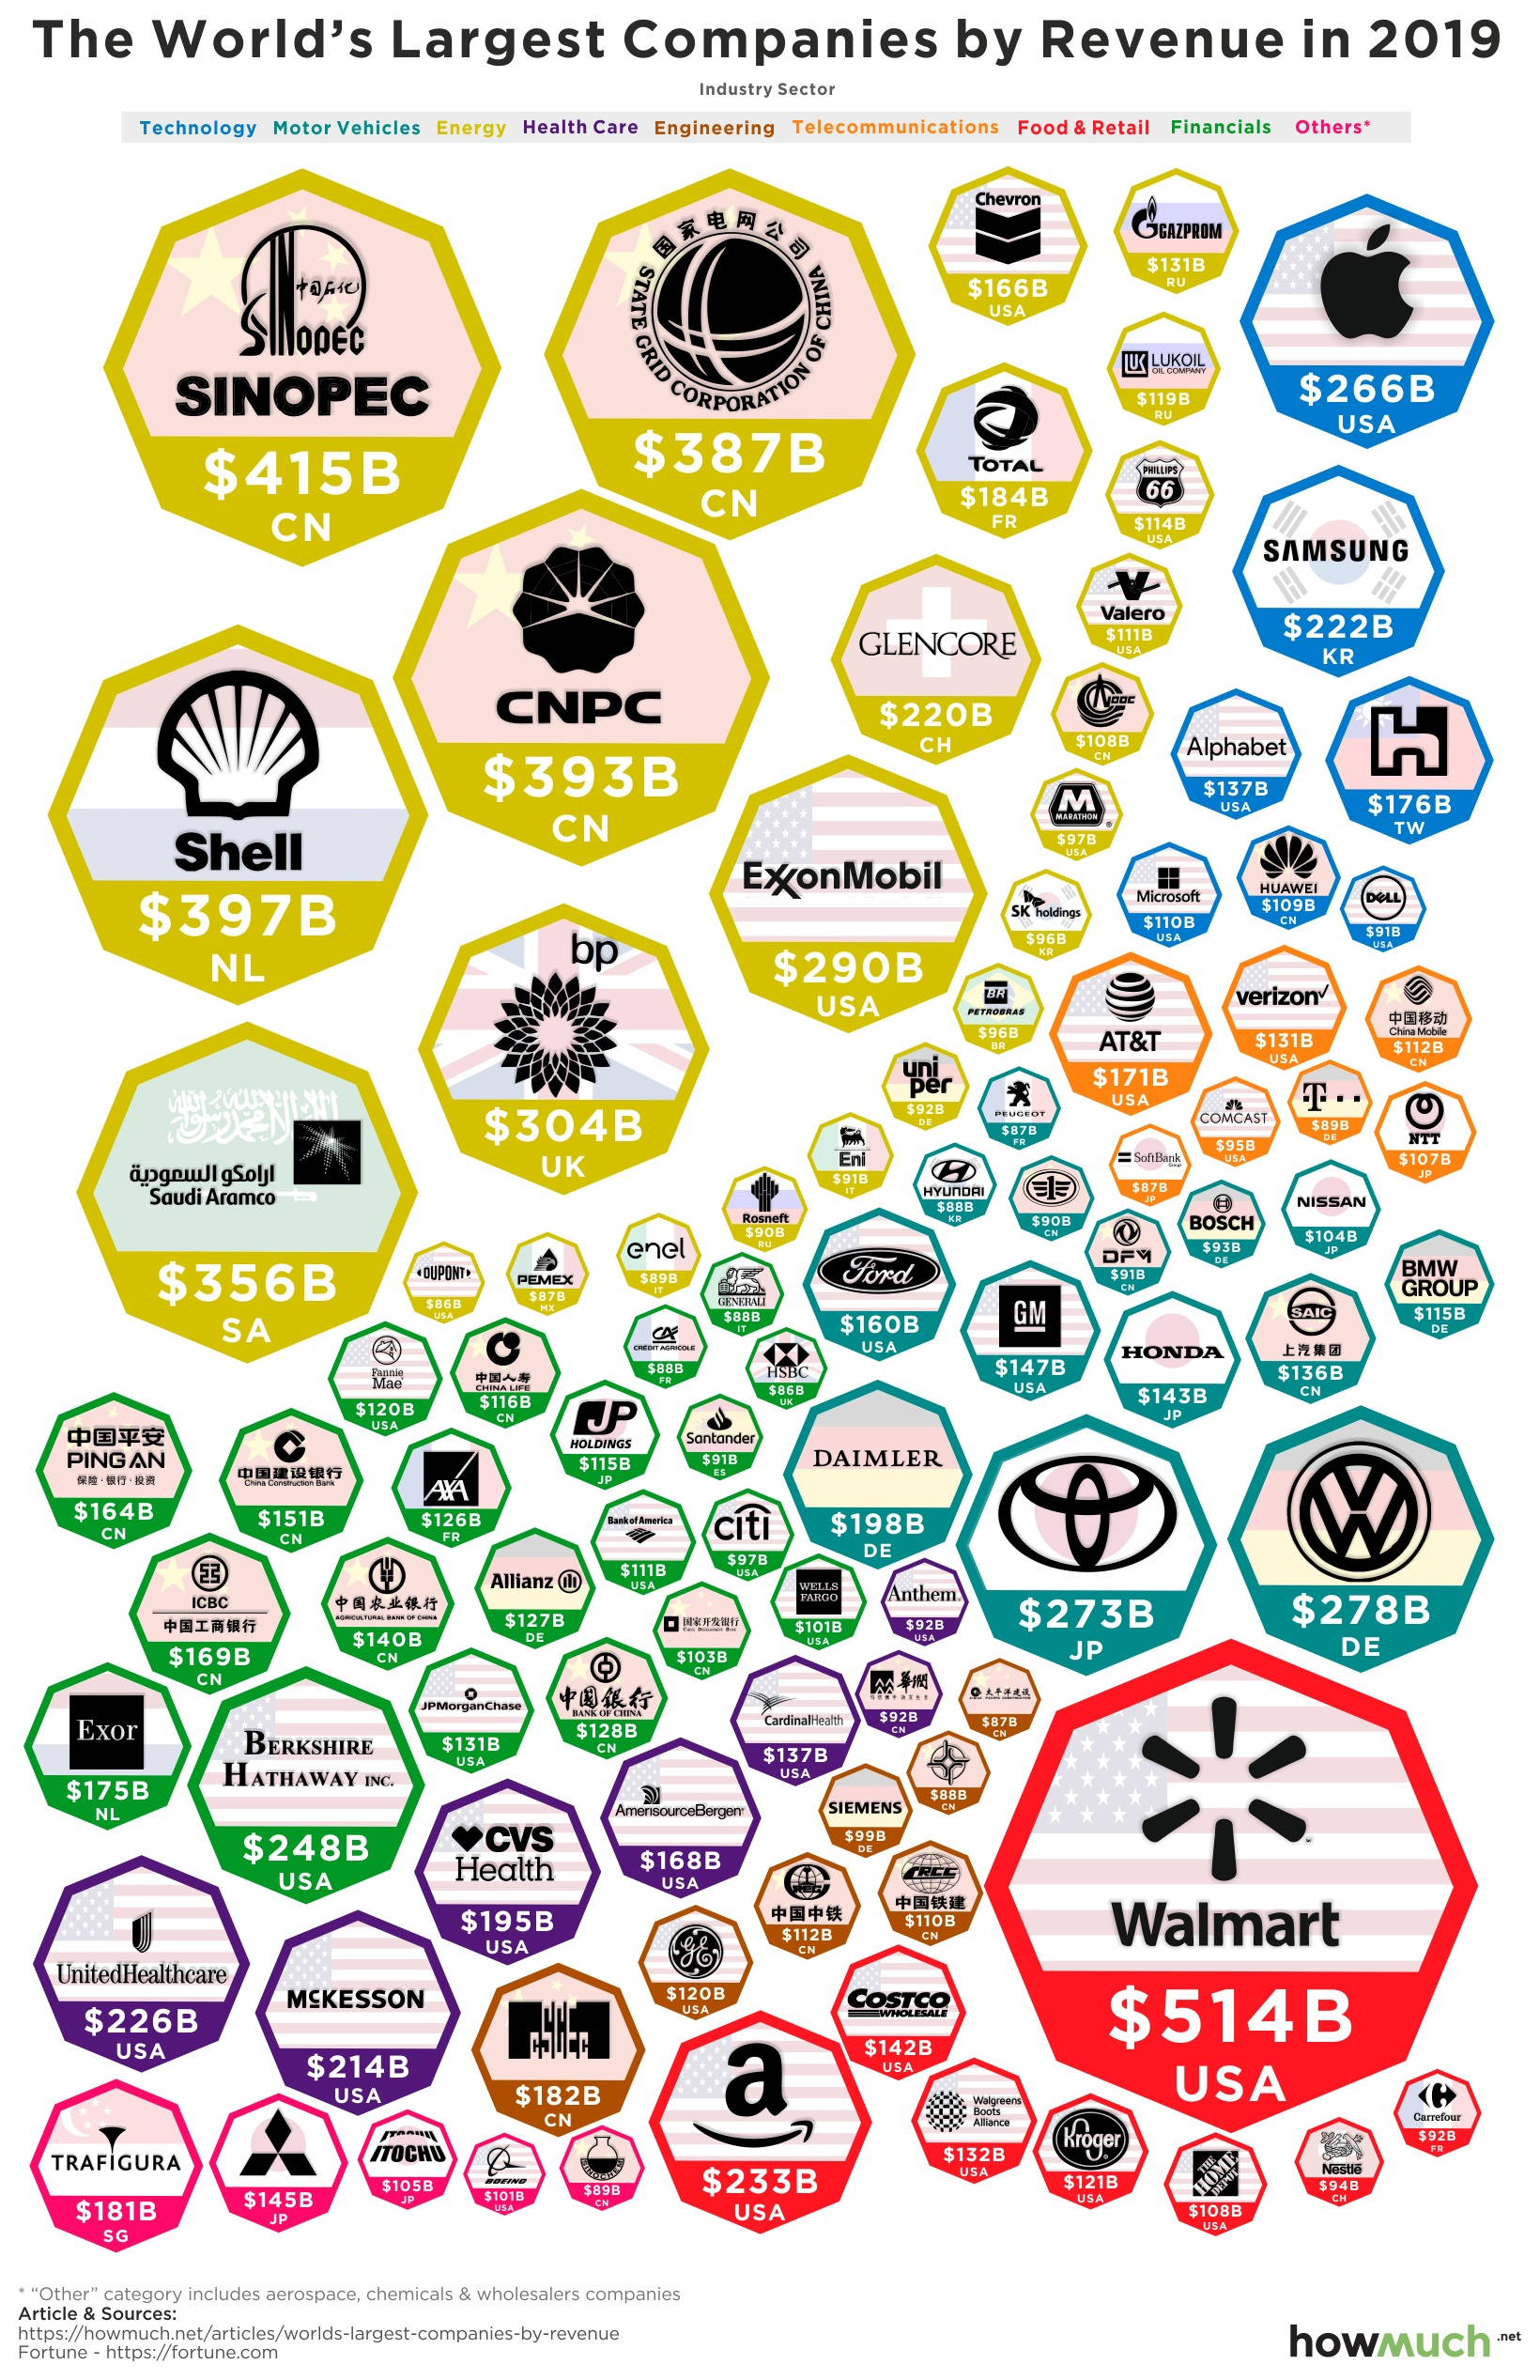 The World's Largest Companies By Revenue, Visualized - Digg